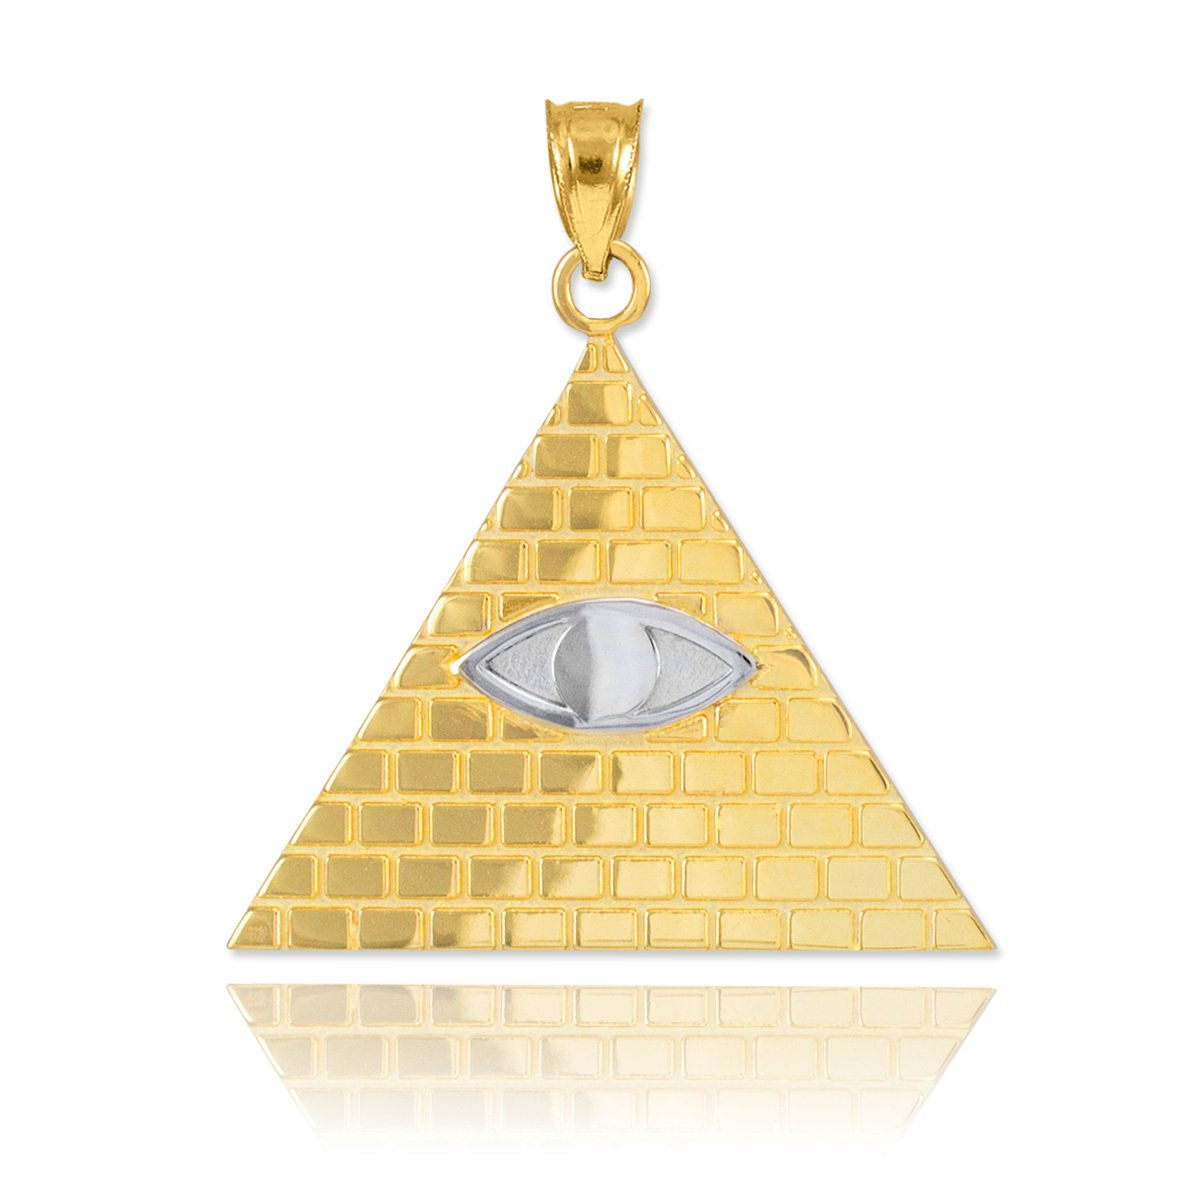 Fine 10k Two-Tone Gold Pyramid Charm All Seeing Eye of Providence Illuminati Pendant